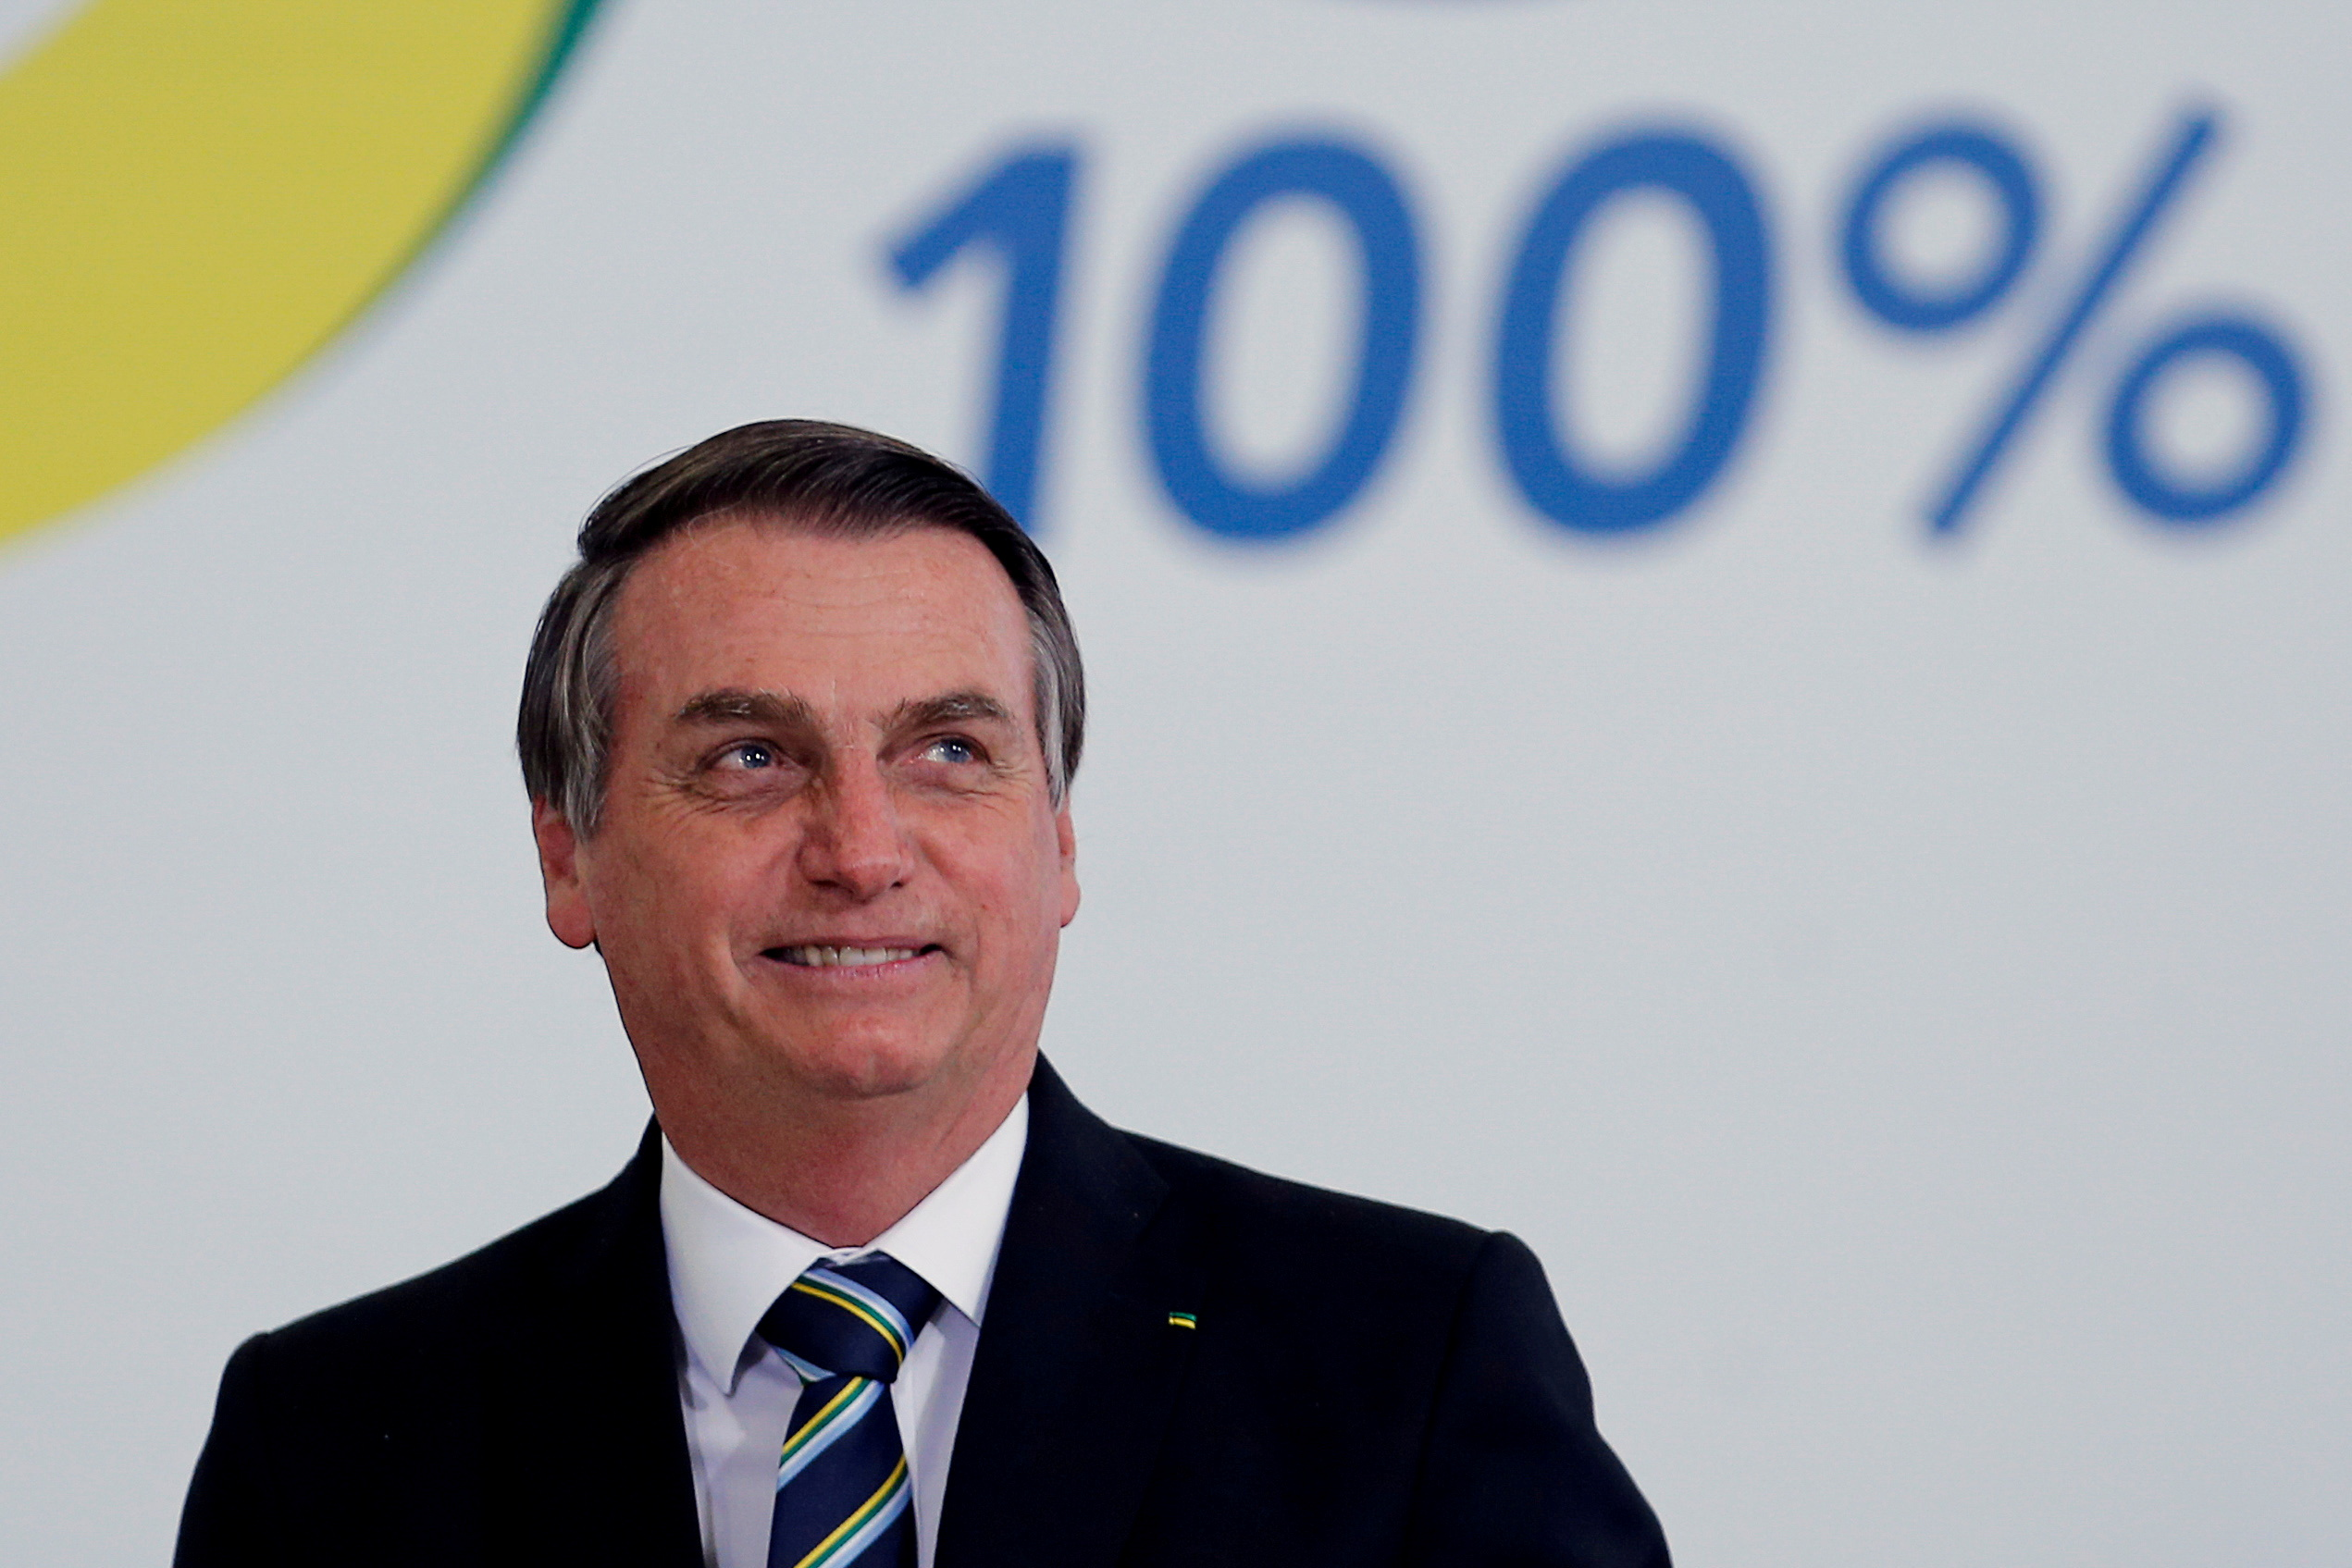 Brazil's President Jair Bolsonaro attends the ceremony marking his 200 days in office at the Planalto Palace in Brasilia, Brazil July 18, 2019. REUTERS/Adriano Machado/File Photo